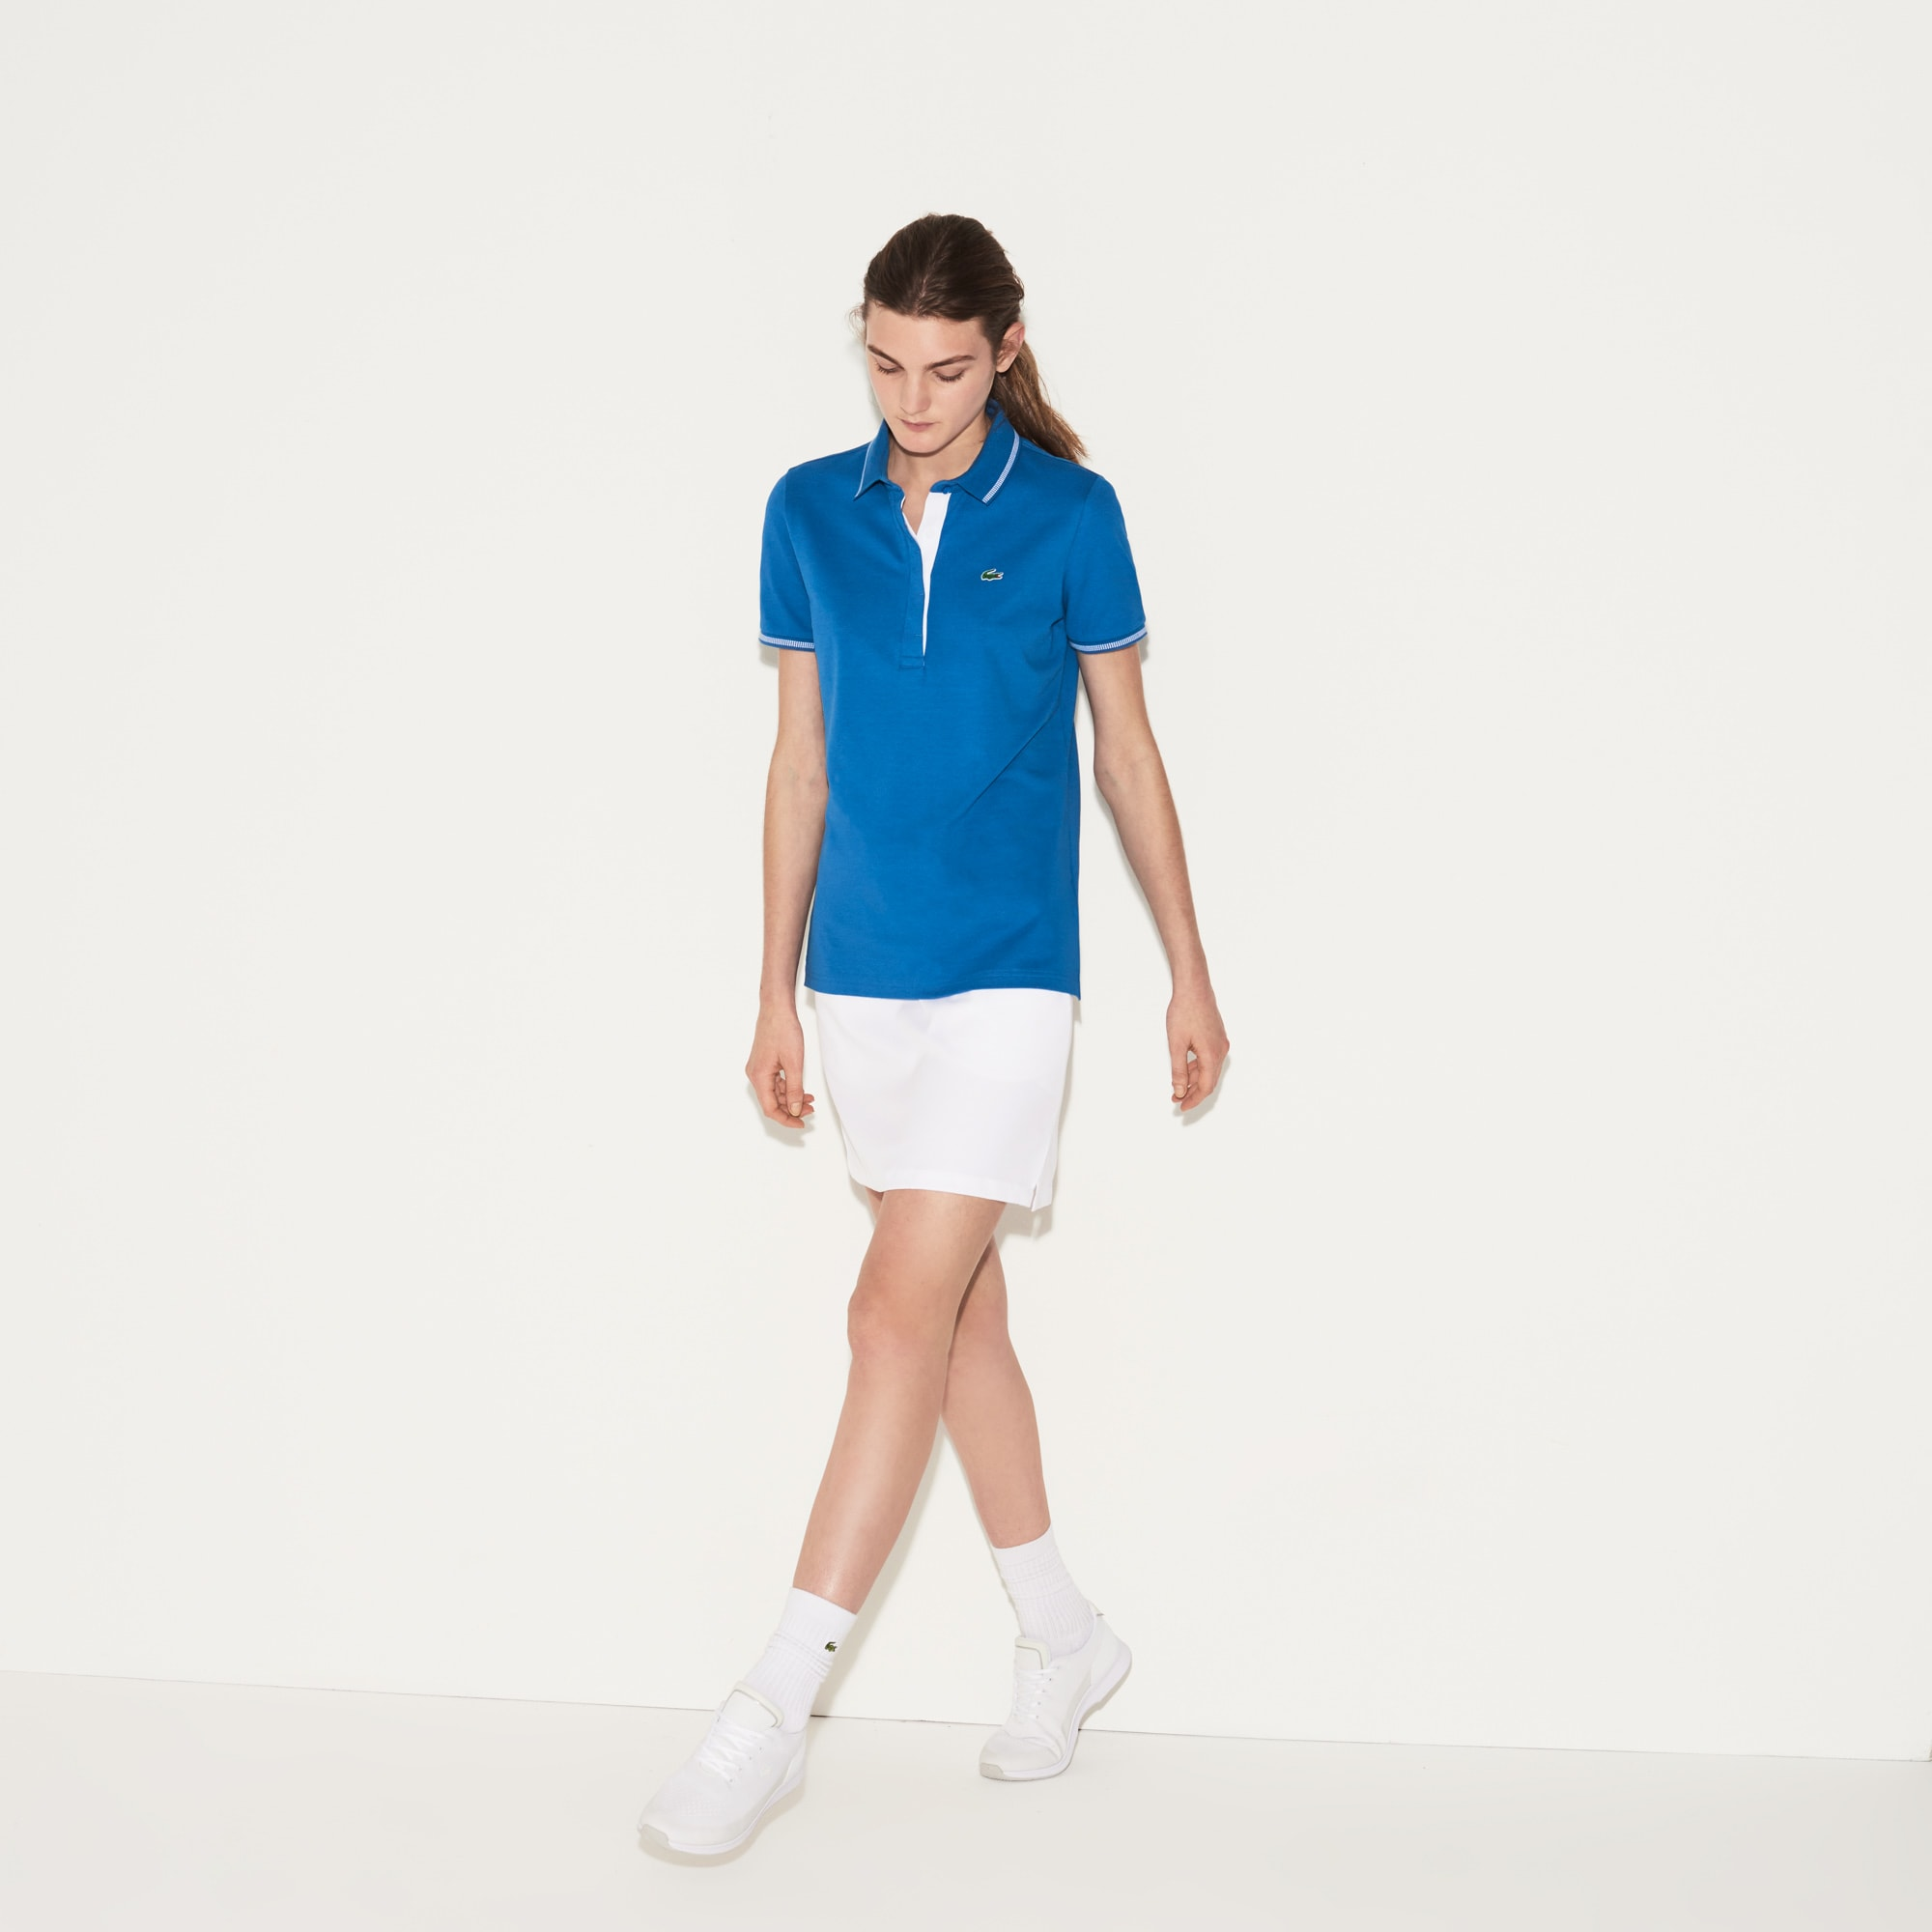 Women's SPORT Light Stretch Technical Cotton Golf Polo